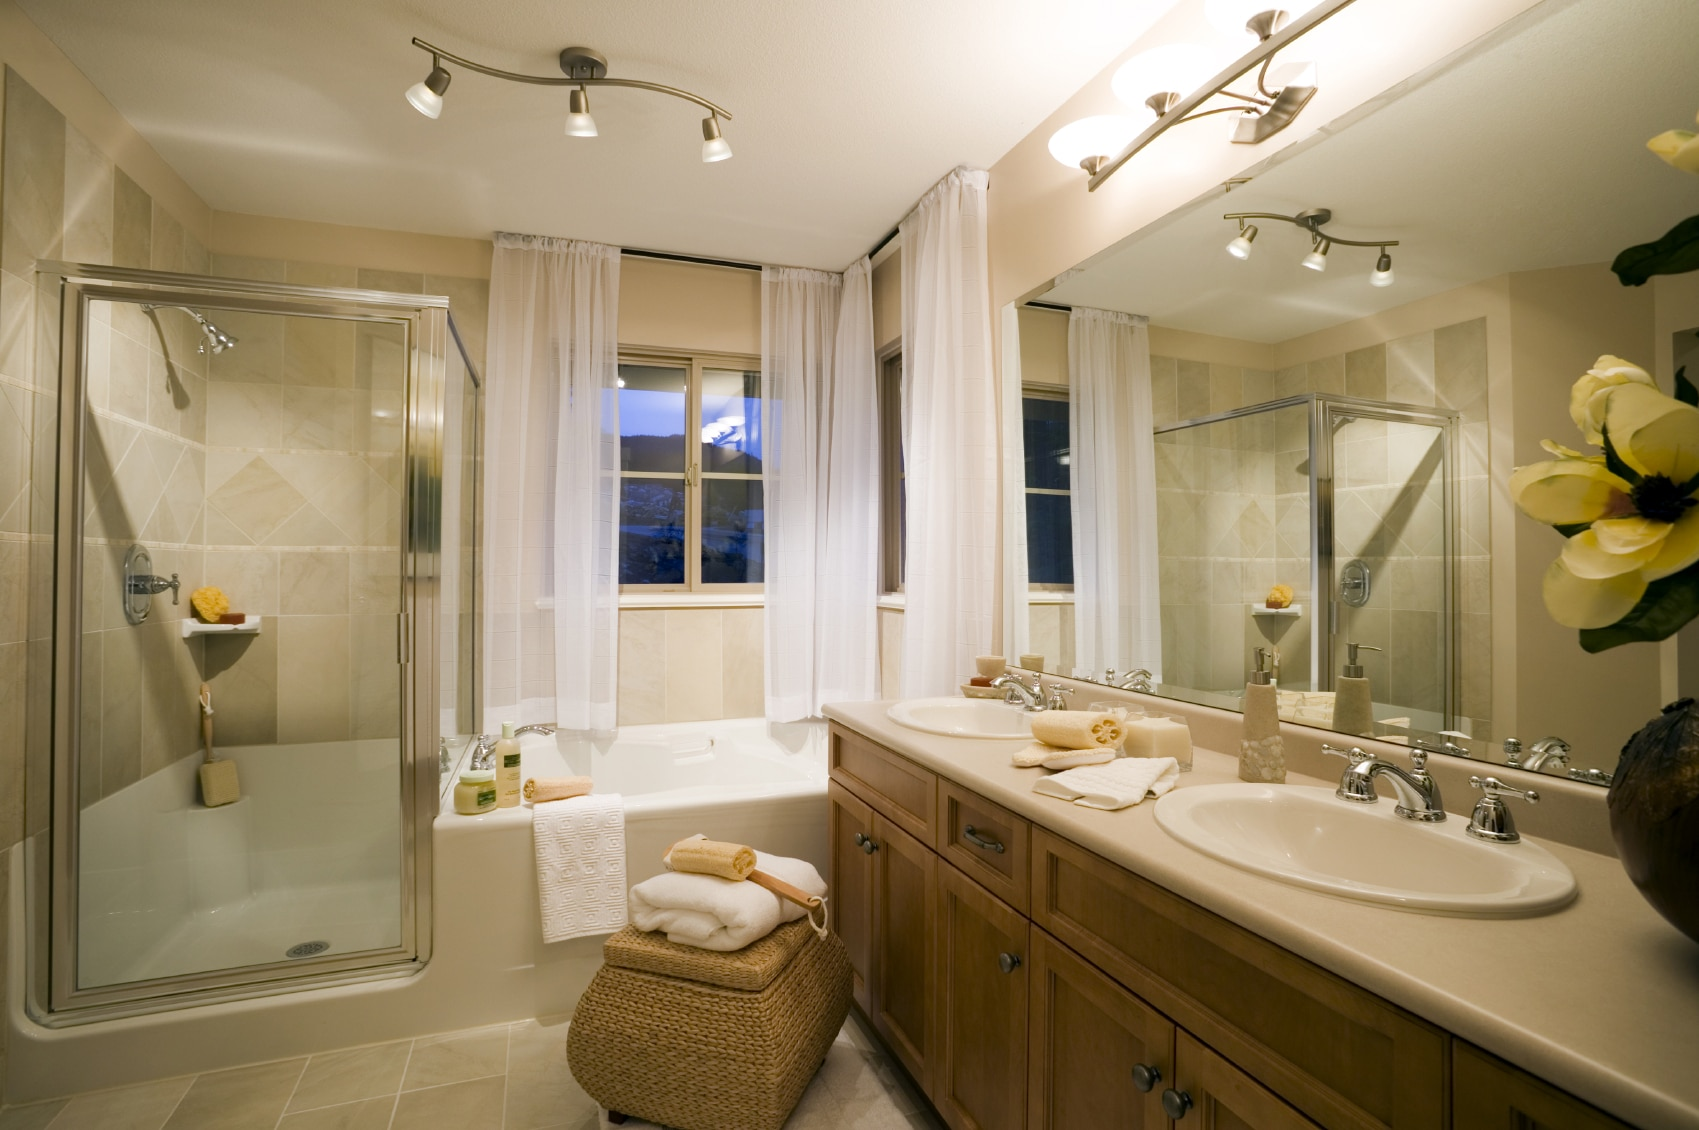 Bathroom Remodel by Elite Craftsmen